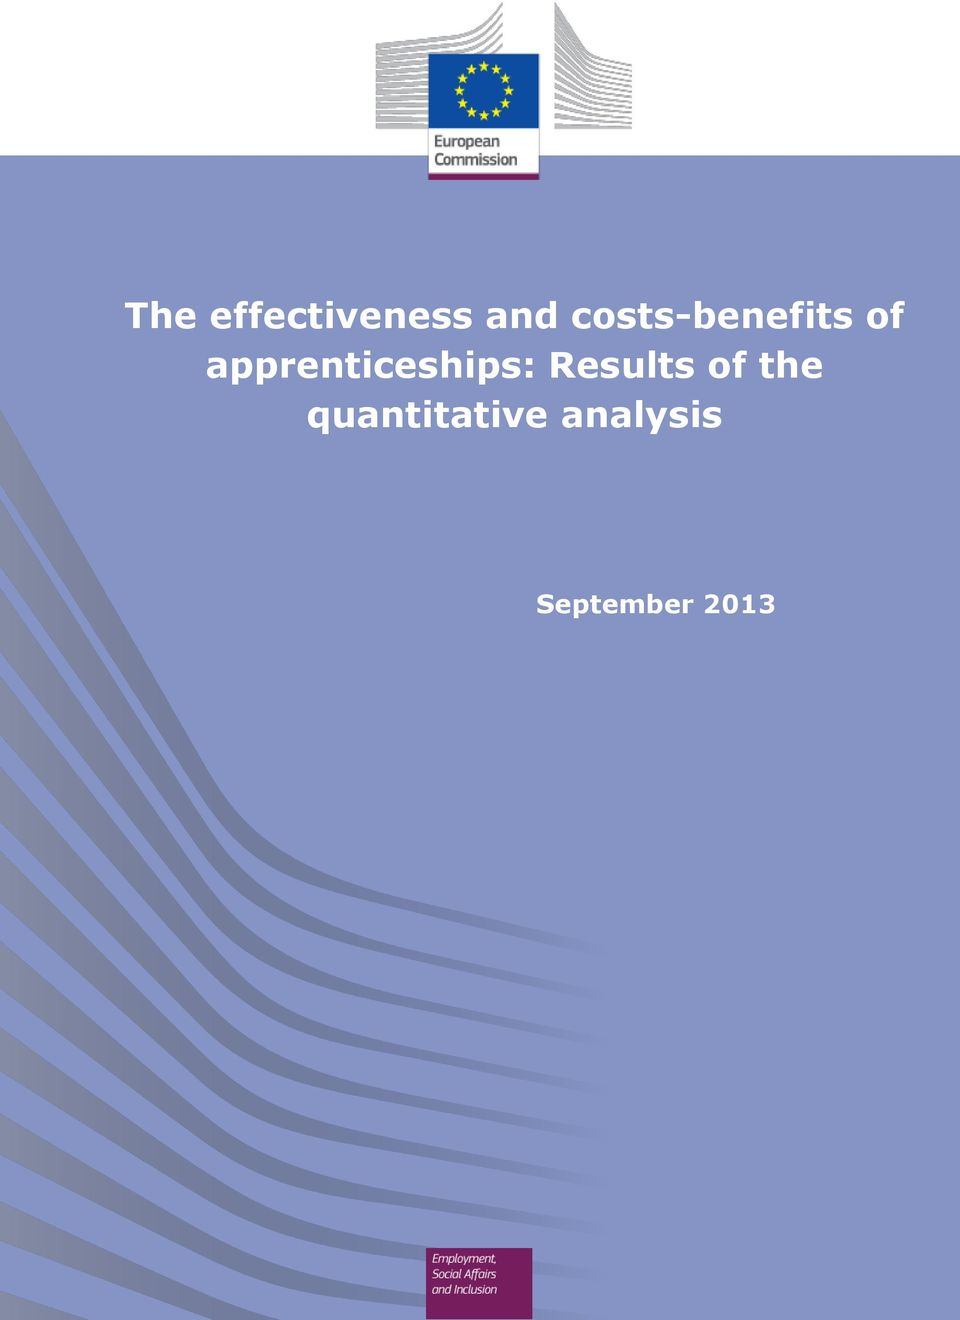 apprenticeships: Results